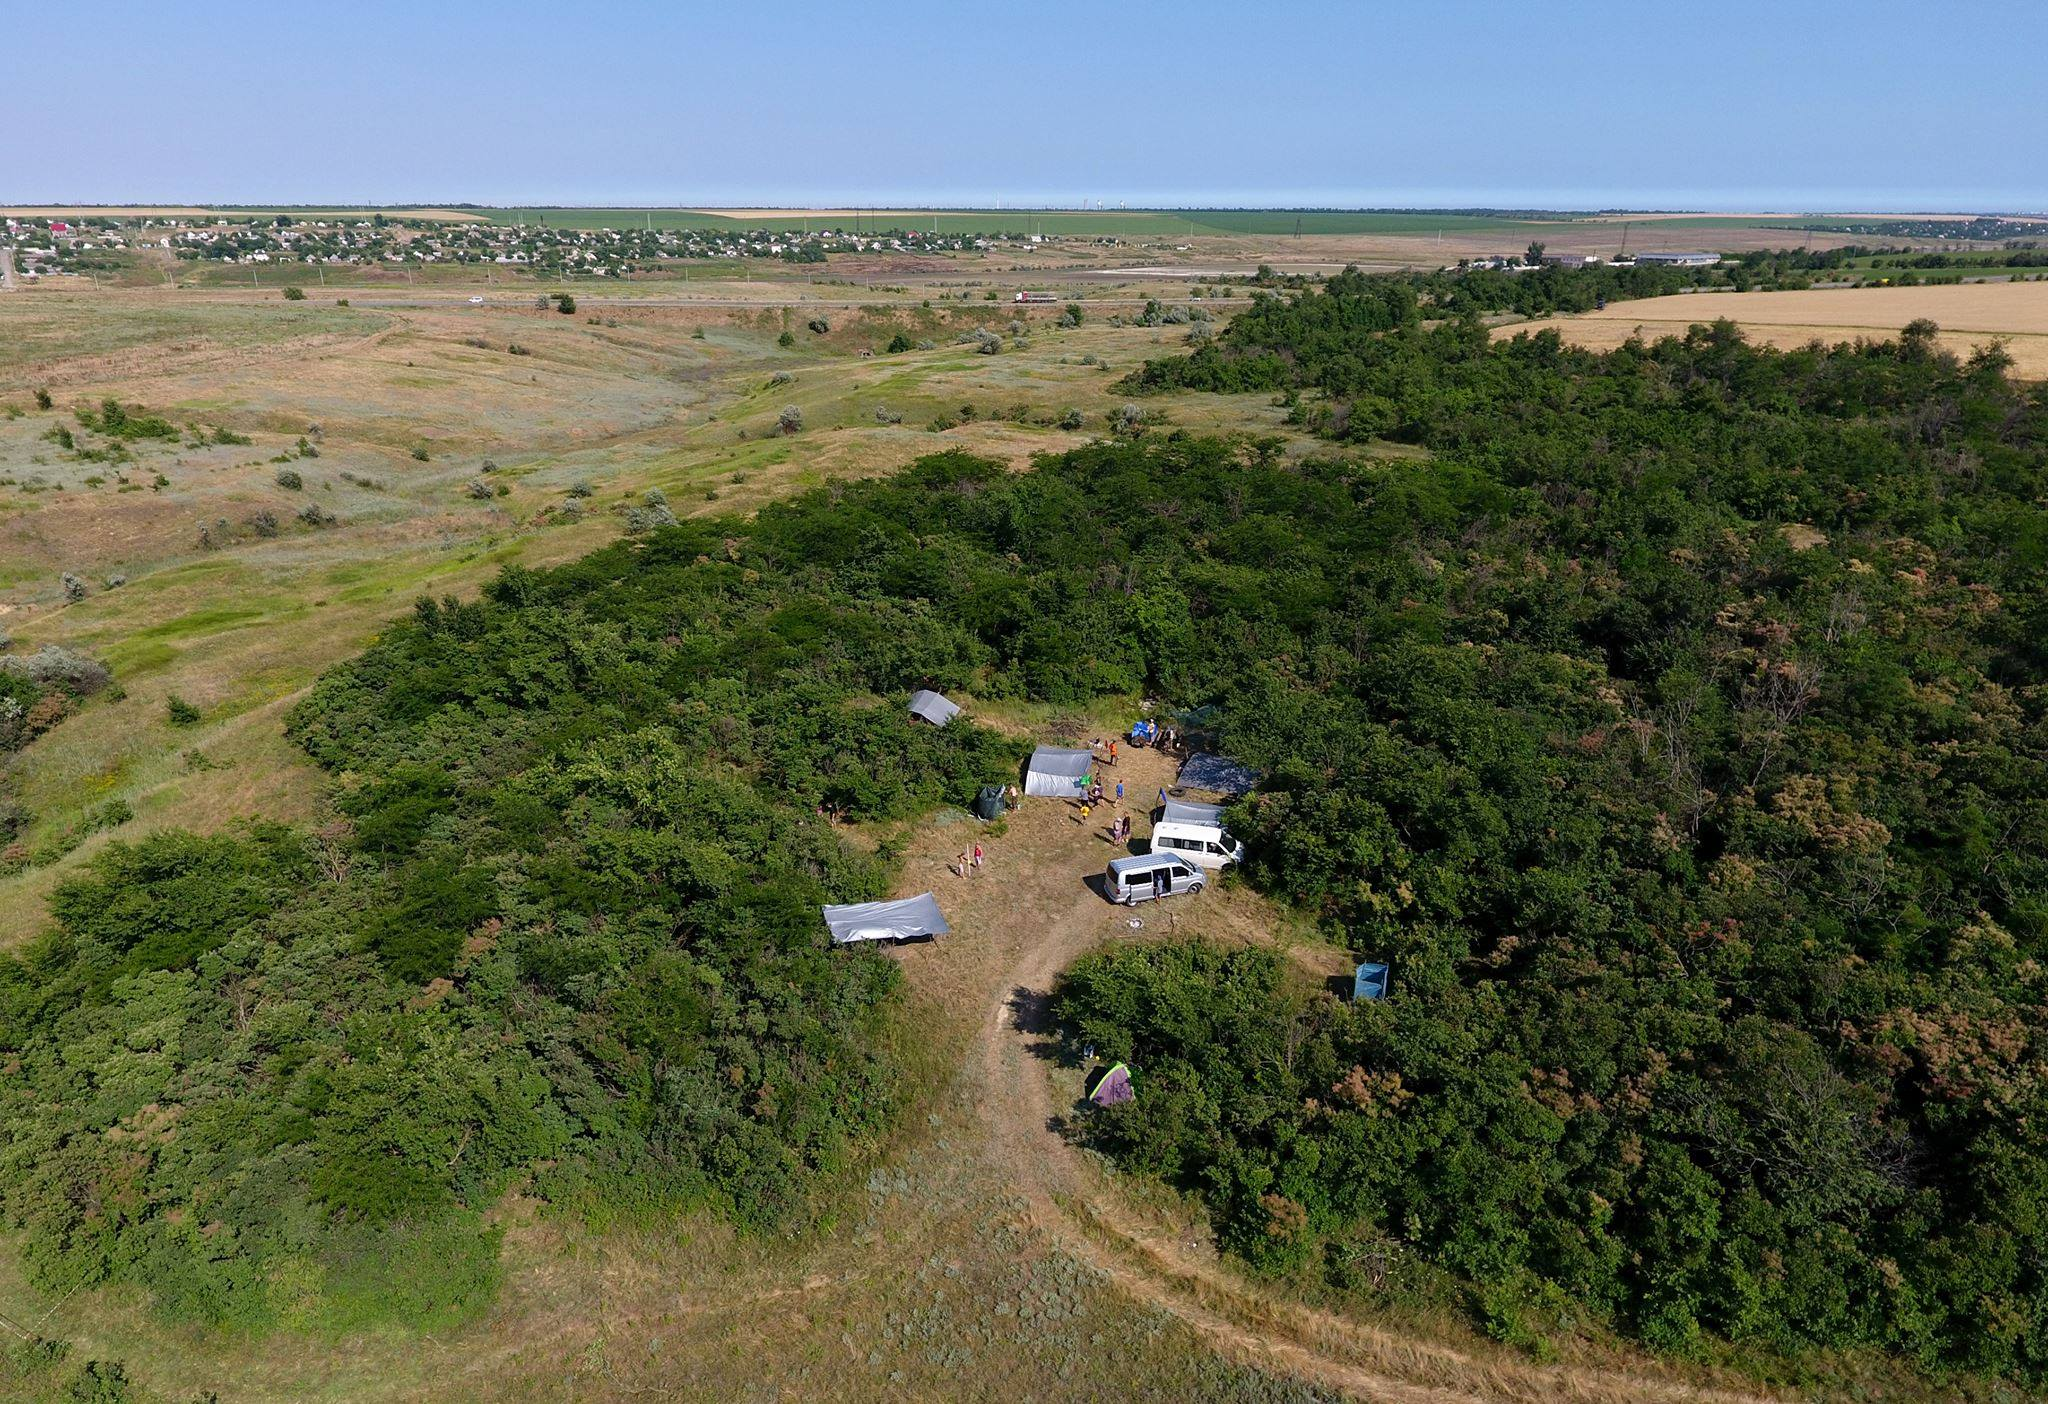 Drone shot of the Boys Camp campsite